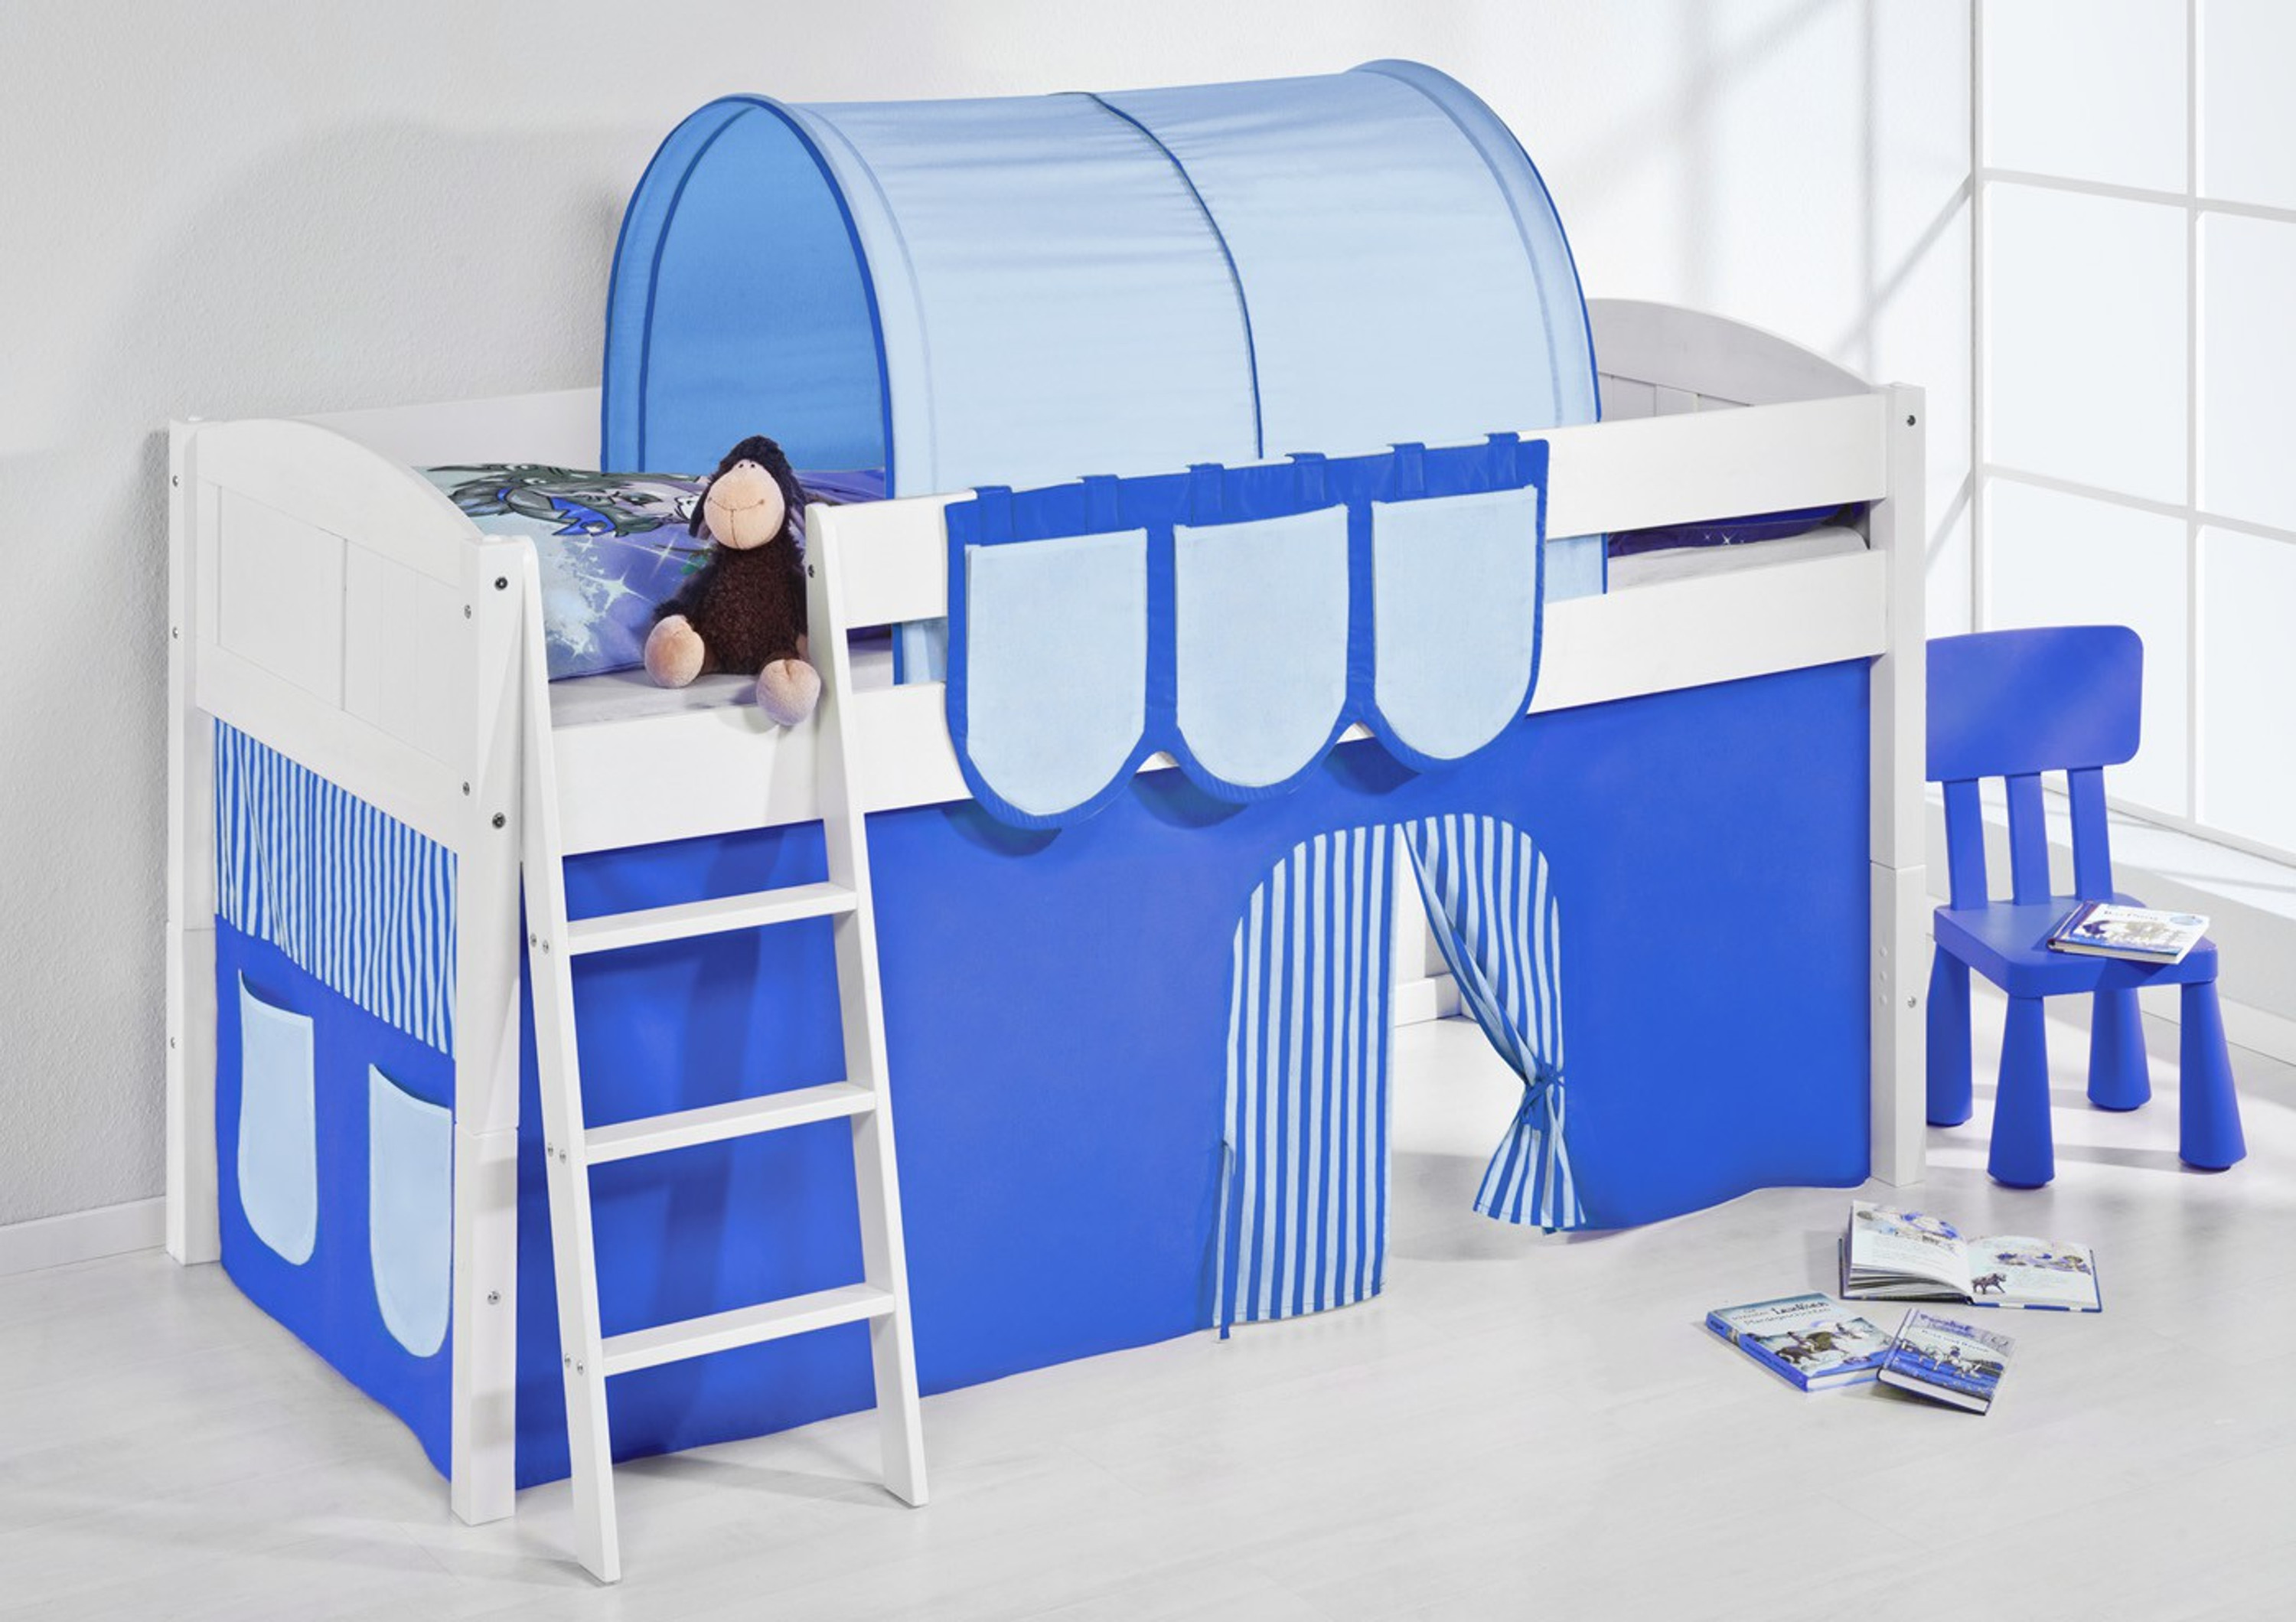 spielbett blau wei mit vorhang 4106 m bel baby kinderzimmer hochbetten. Black Bedroom Furniture Sets. Home Design Ideas